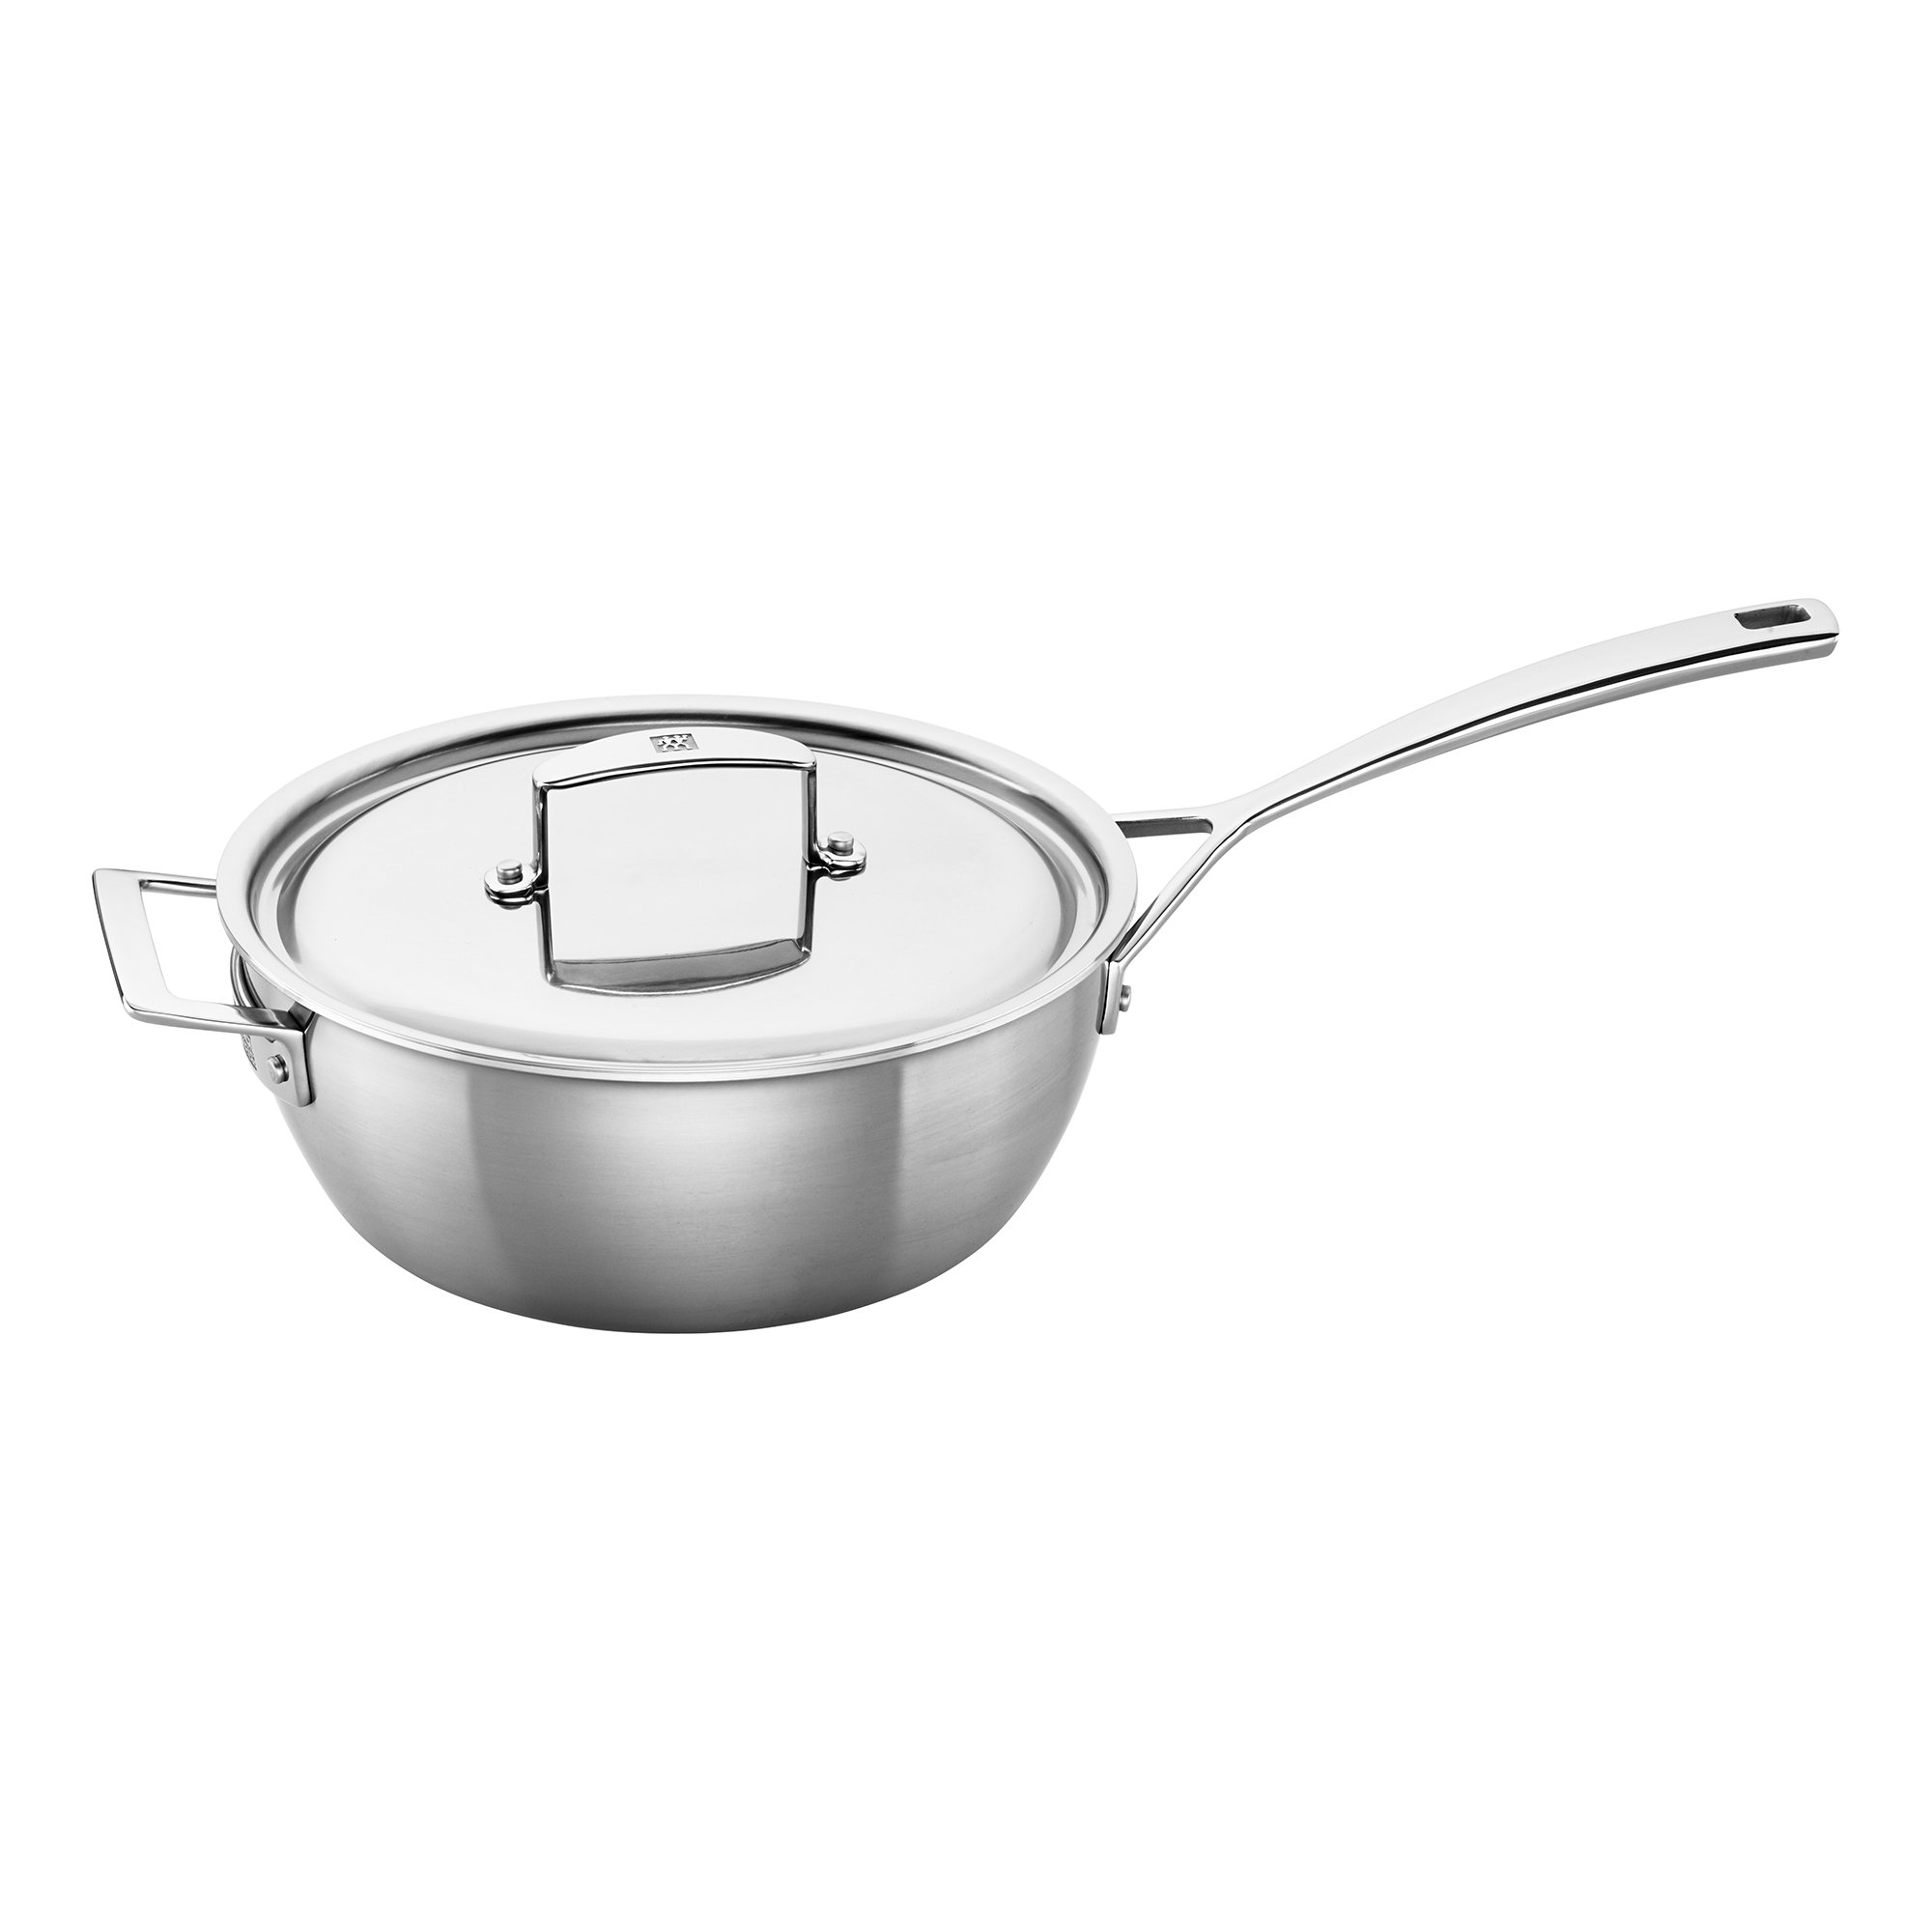 ZWILLING J.A. Henckels 66080-240 Saucier, 3.5 quart, Stainless Steel by ZWILLING J.A. Henckels